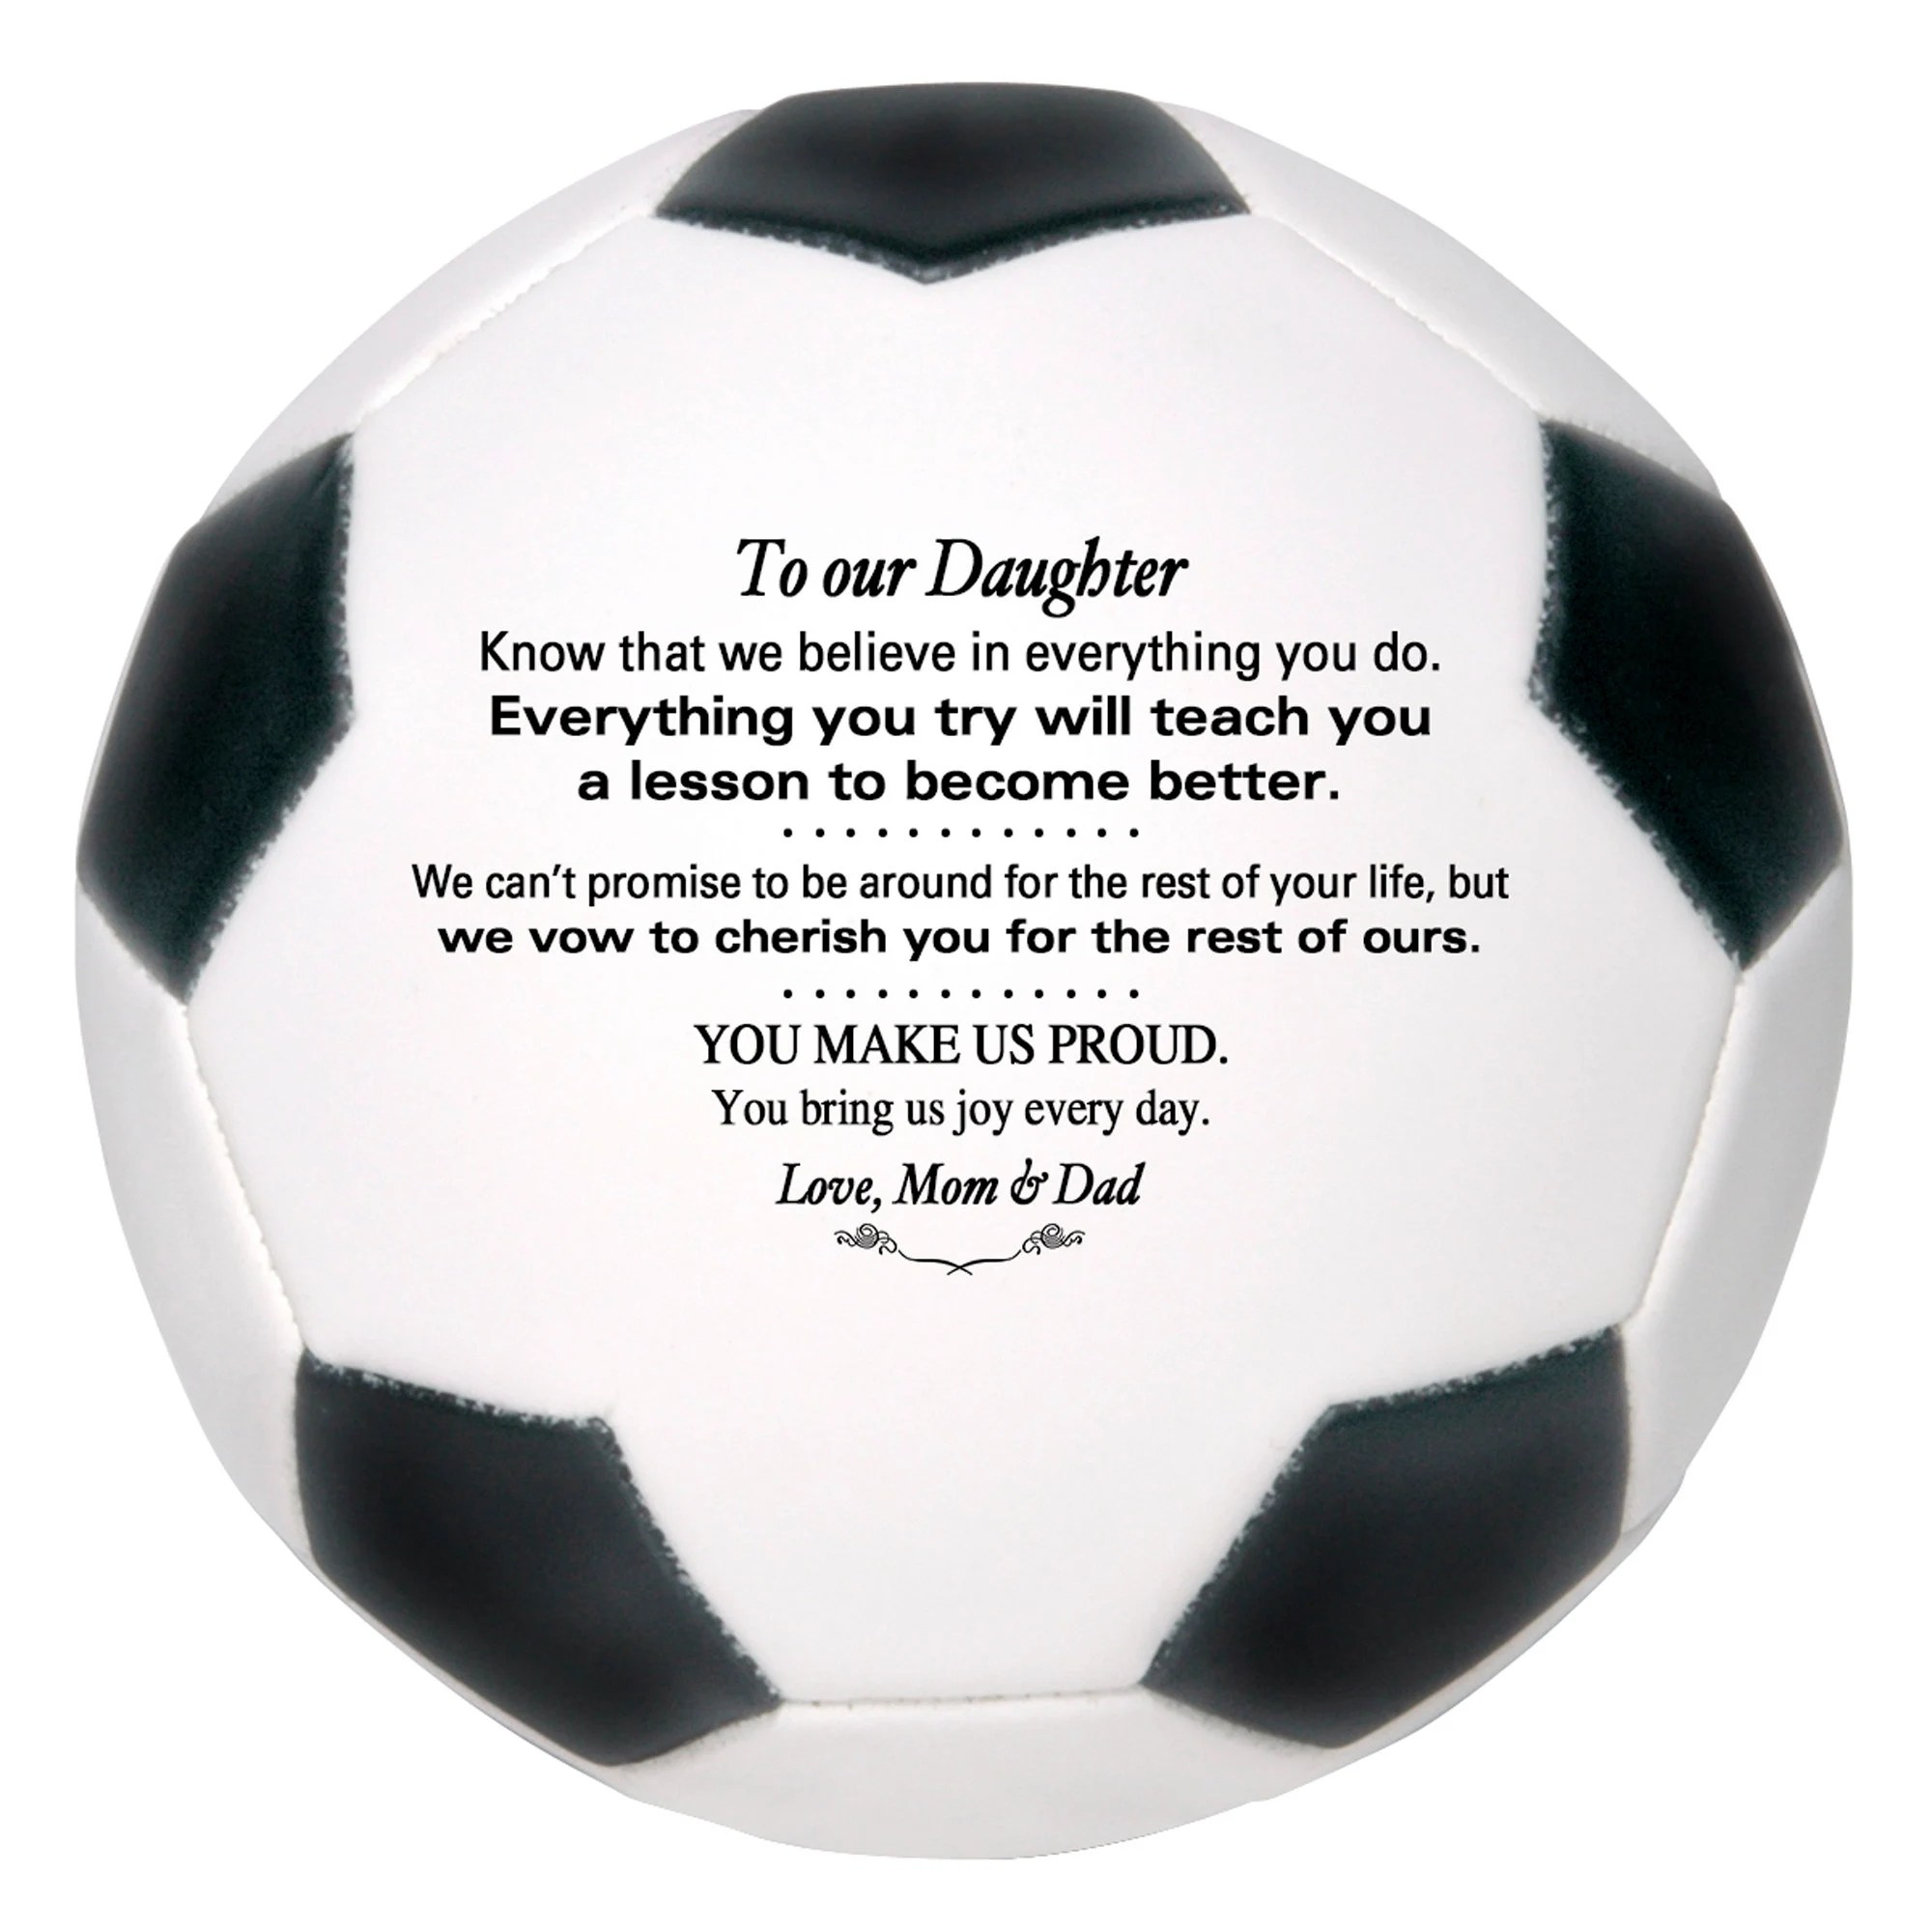 Personalized Custom Soccer Ball To Our Son Grandson Daughter image 2